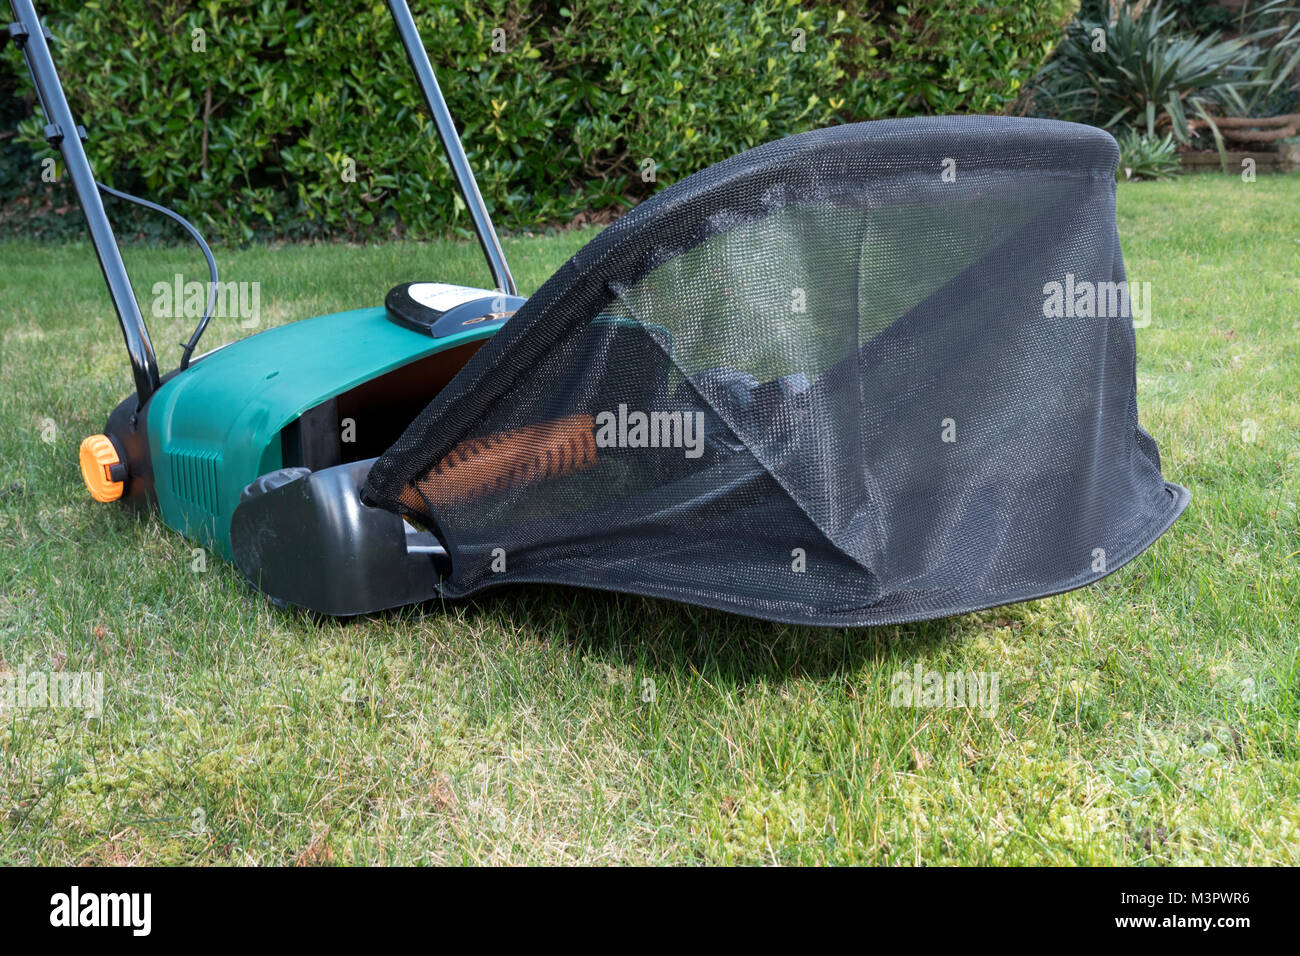 Electric garden lawn raker - Stock Image